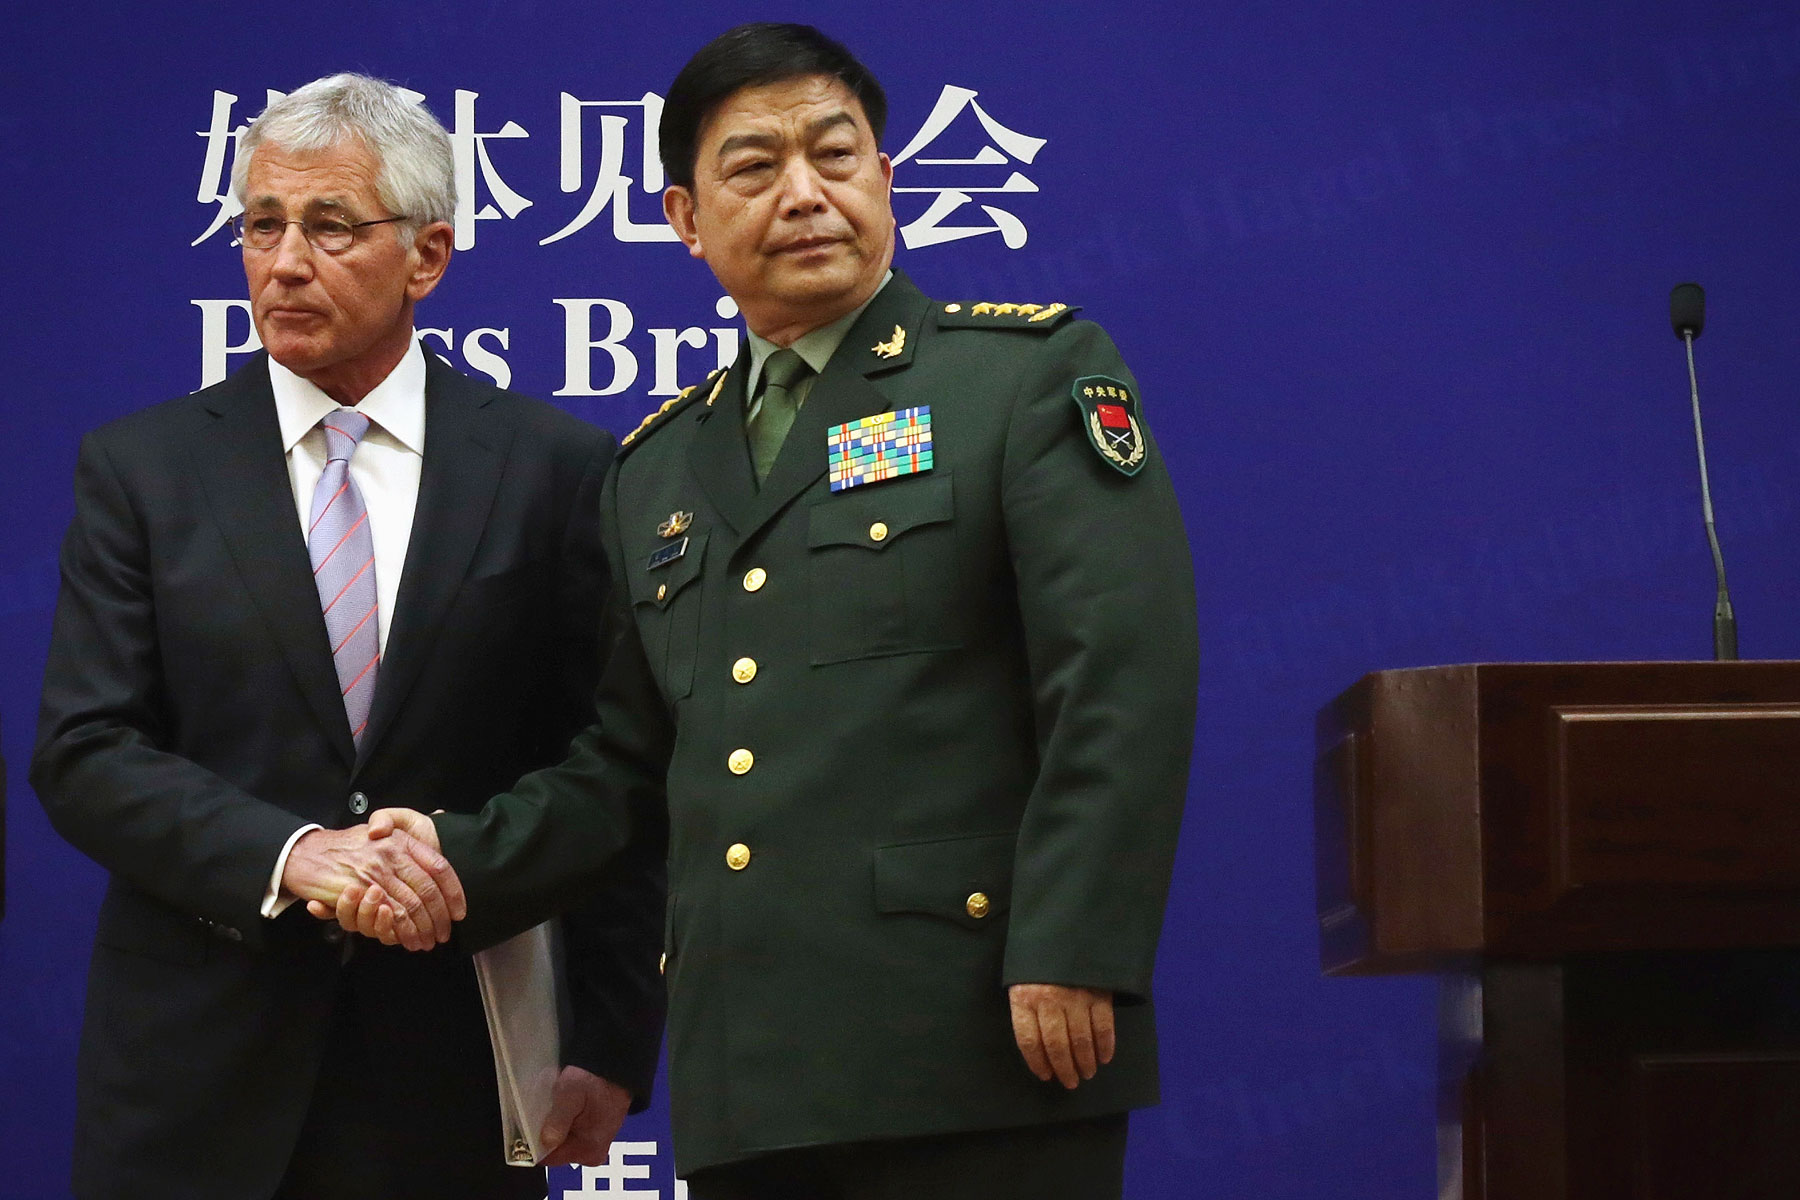 U.S. Secretary of Defense Chuck Hagel (L) and Chinese Minister of Defense Chang Wanquan (R) shake hands at the end of a joint news conference at the Chinese Defense Ministry headquarters April 8, 2014 in Beijing, China